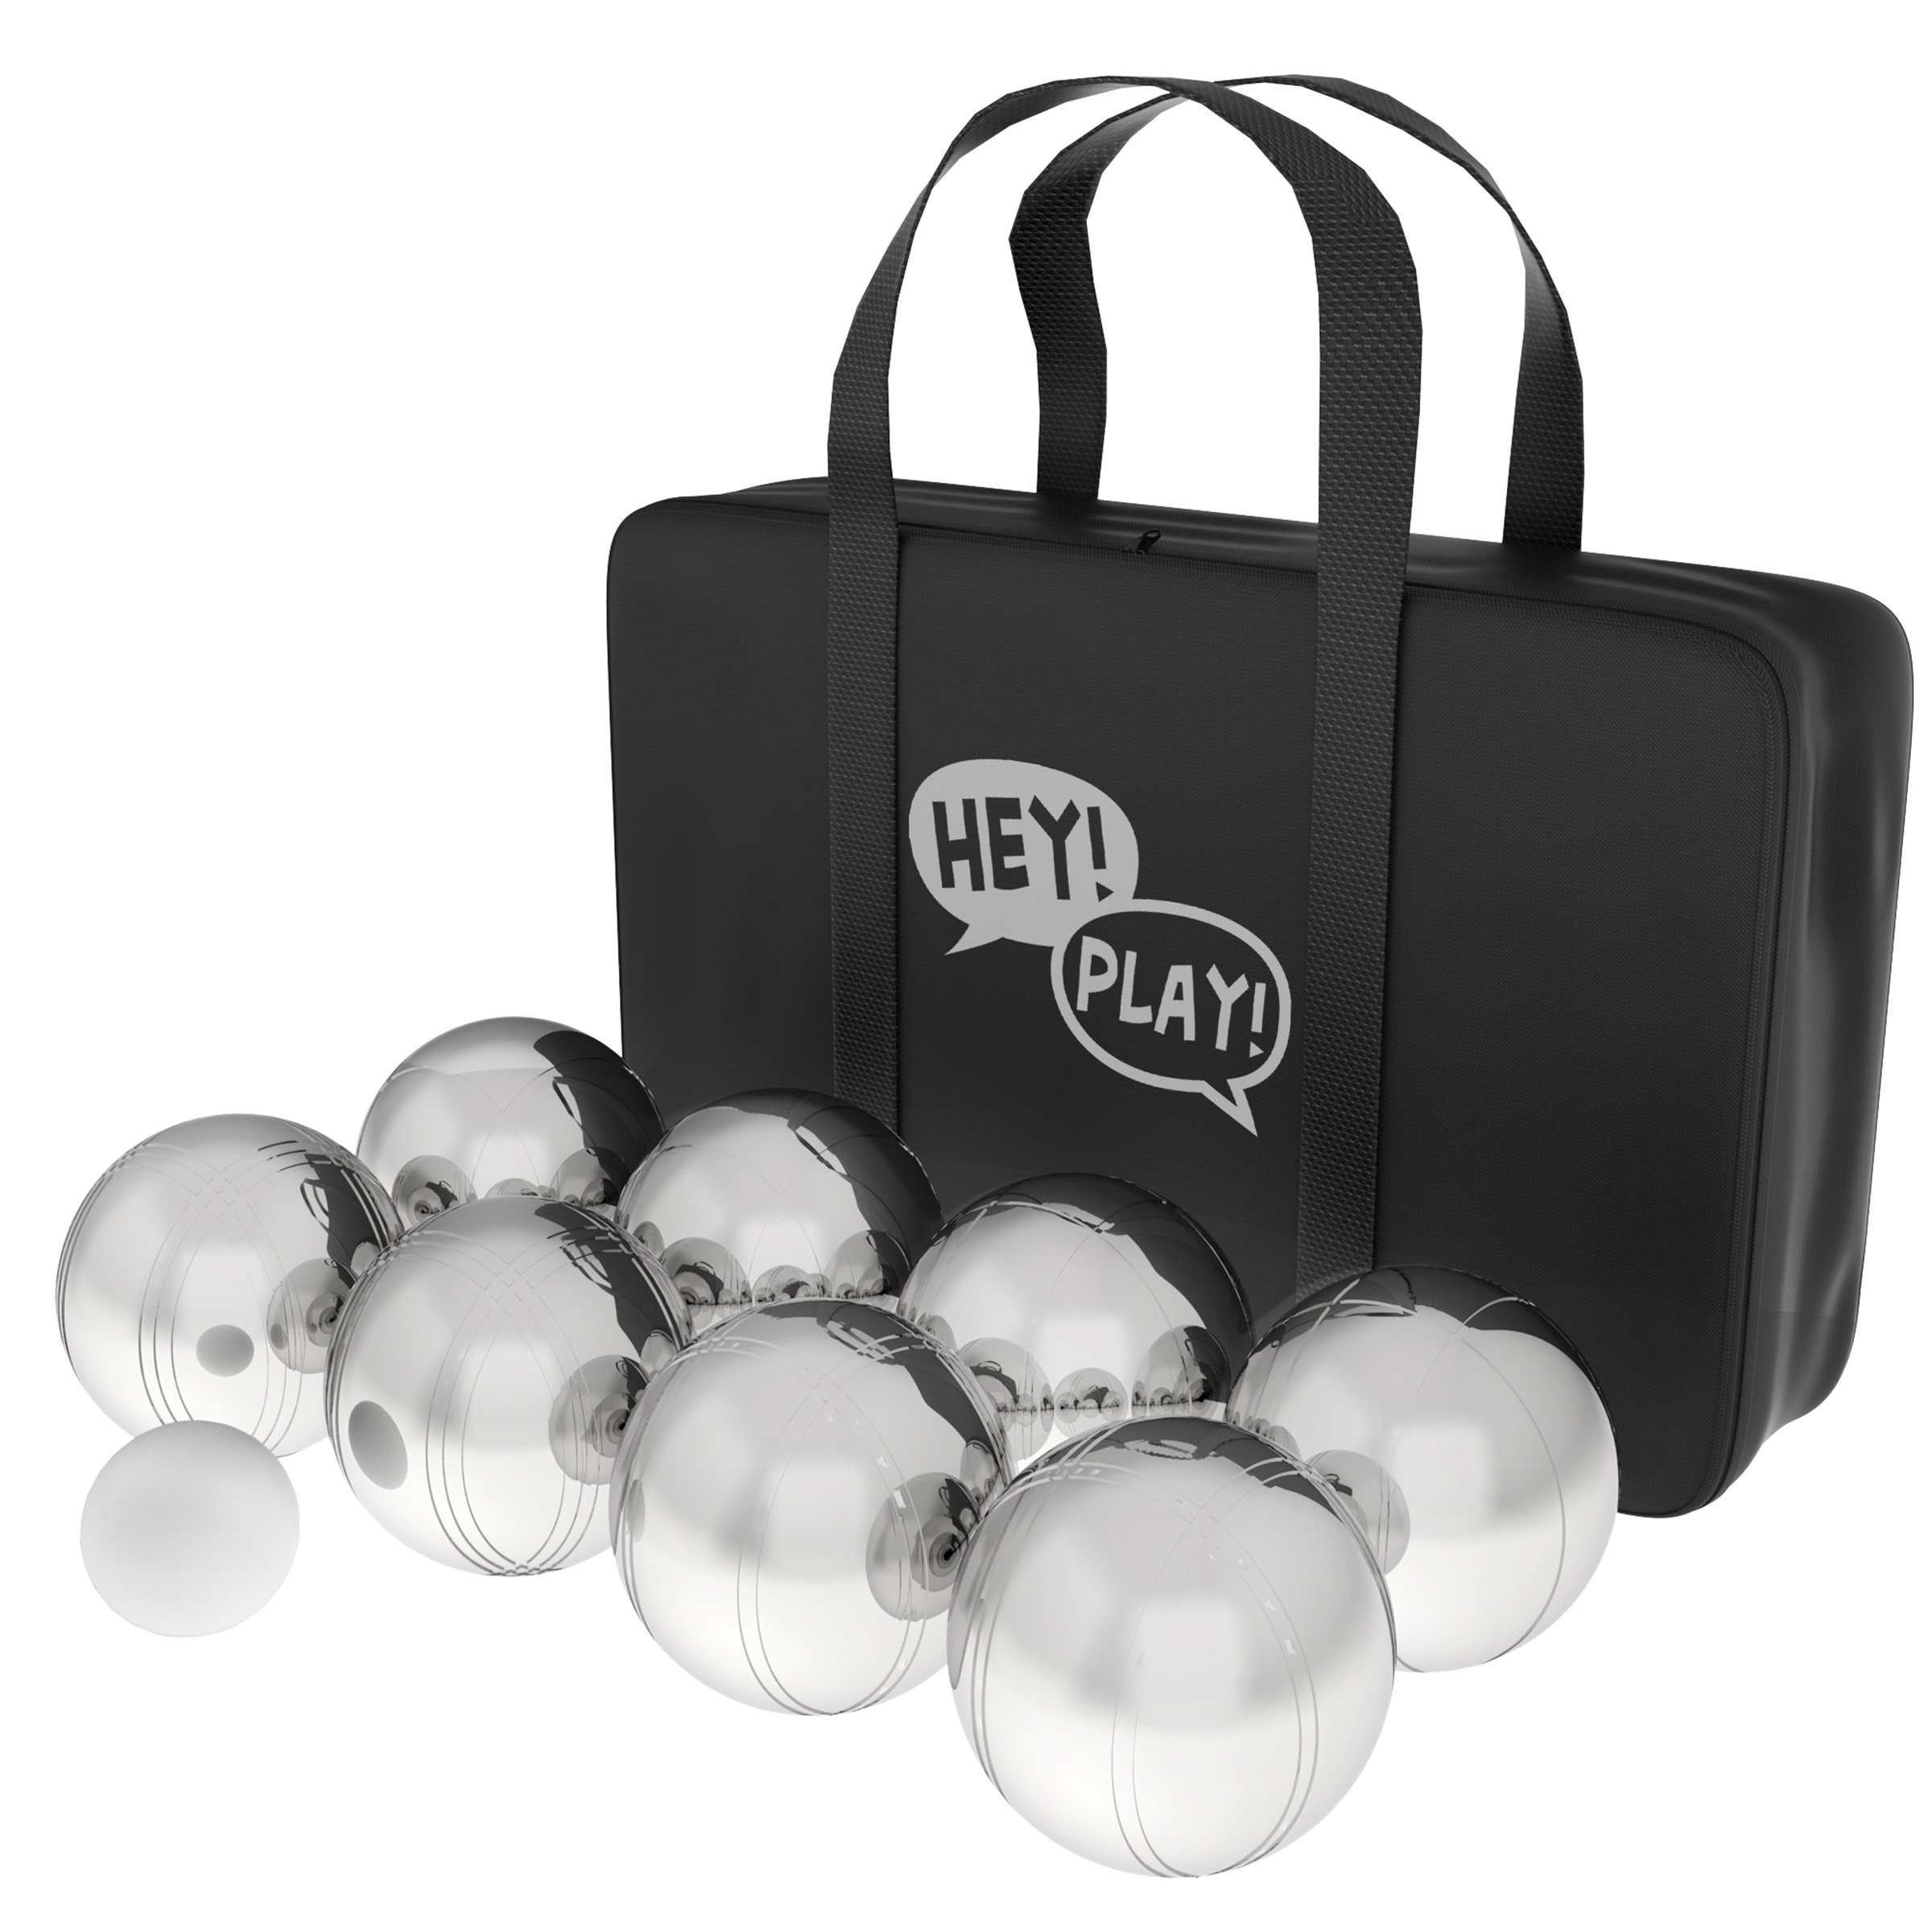 Hey! Play! 80-10606 Petanque/Boules Set for Bocce & More with 8 Steel Tossing Balls